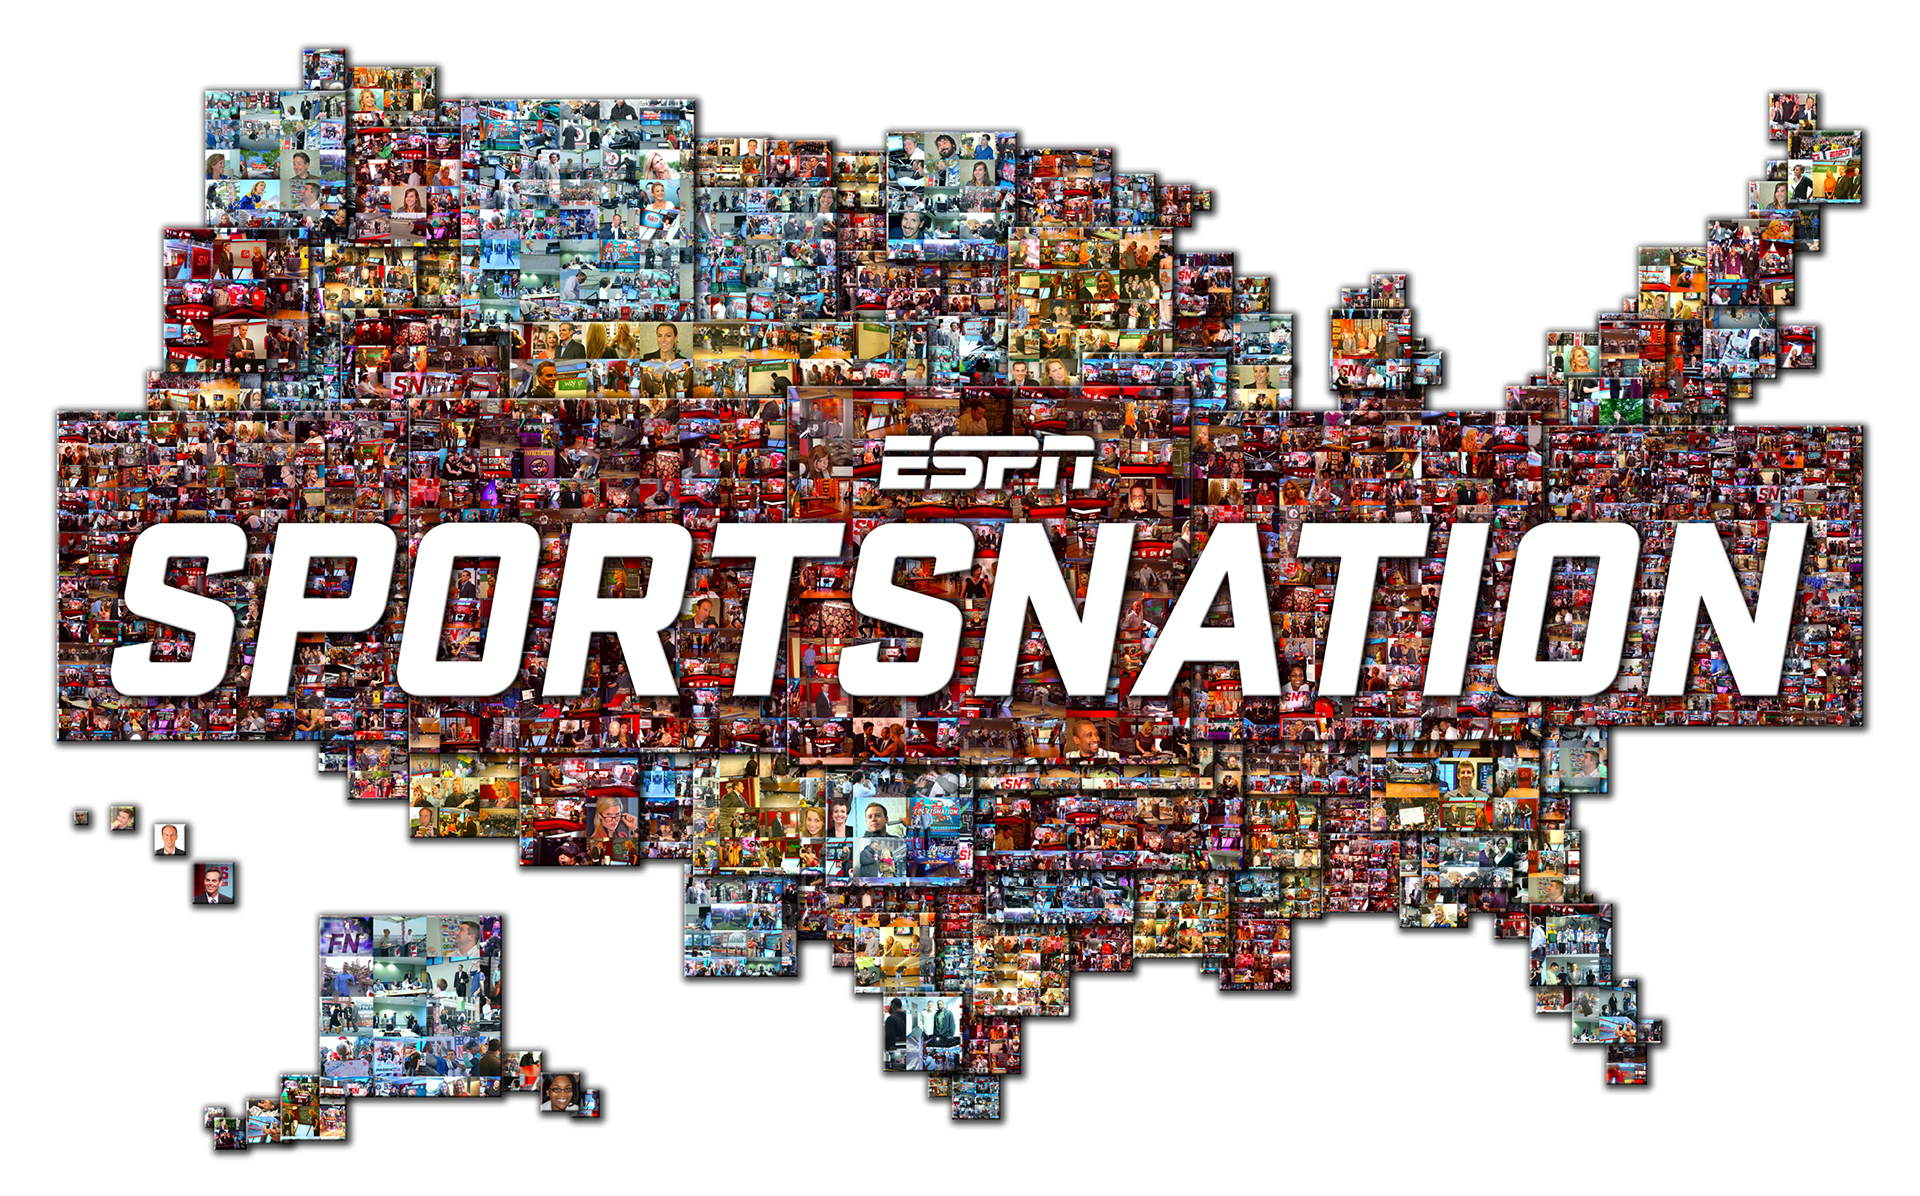 photo mosaic created using over 1200 photos of cast and crew of Sportsnation